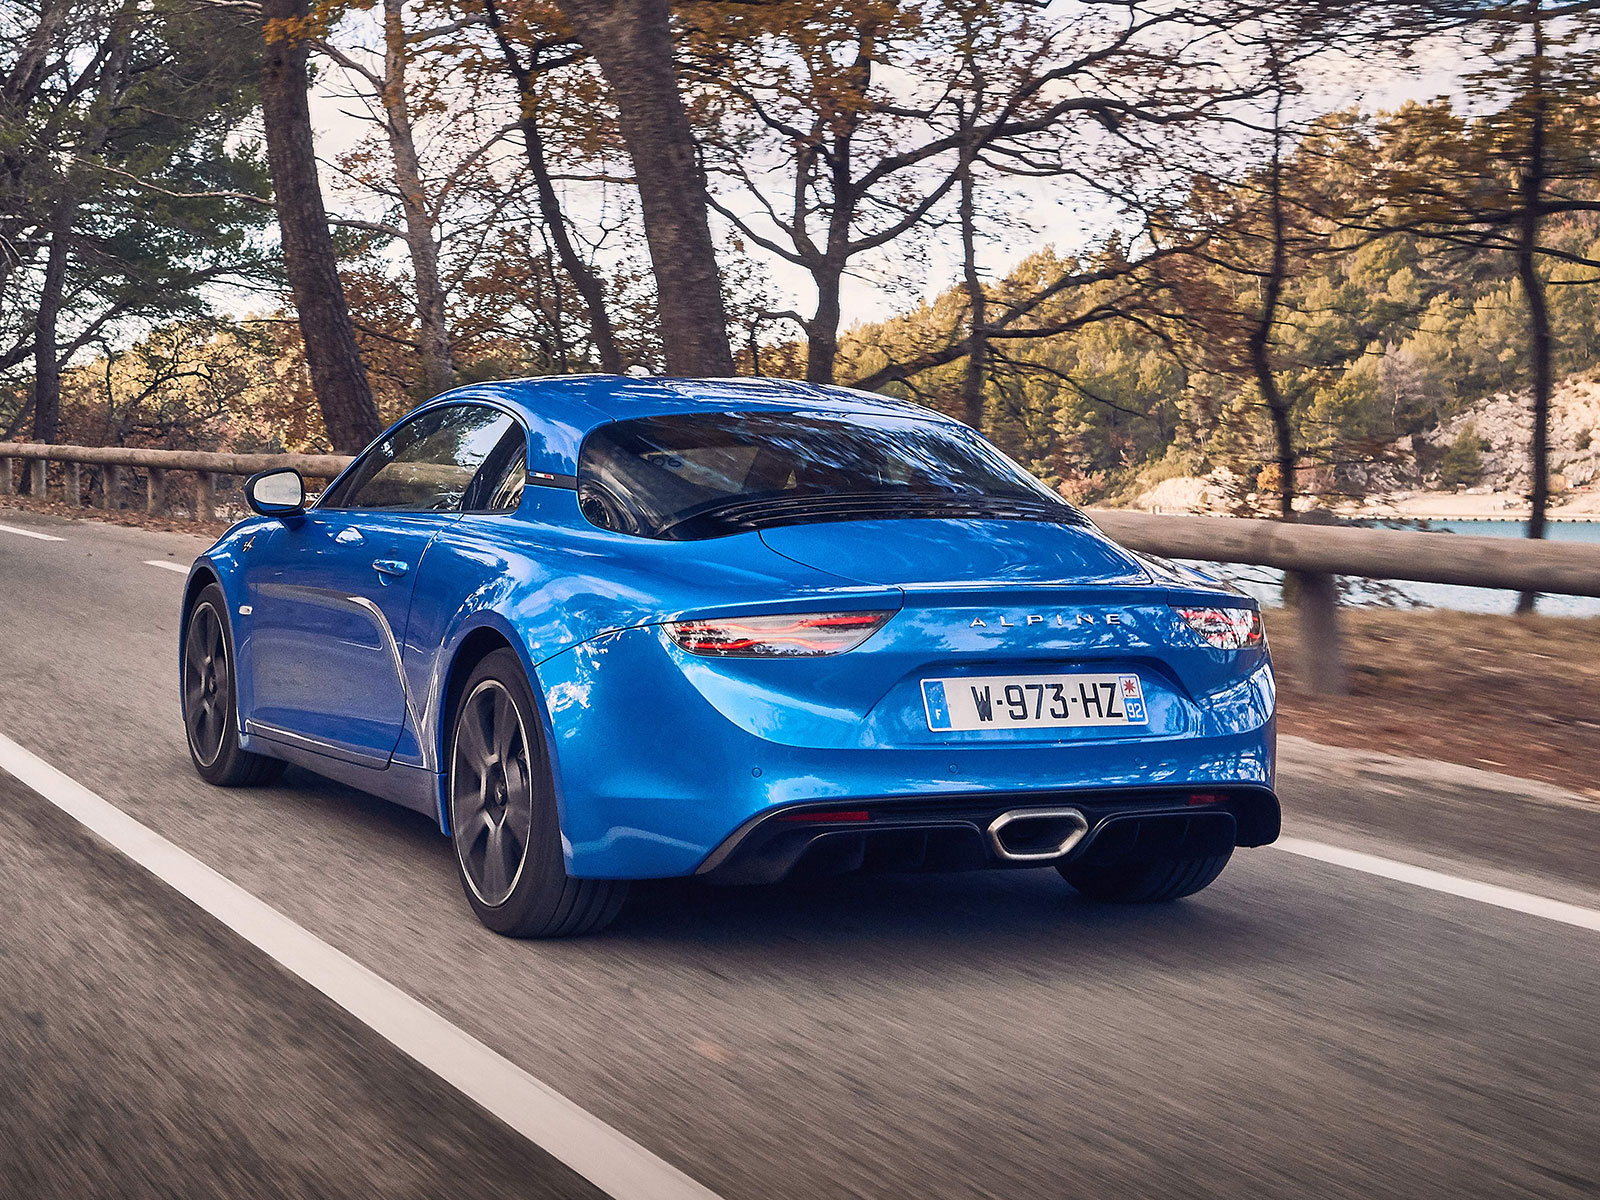 Alpine A110 (c) Renault Communications